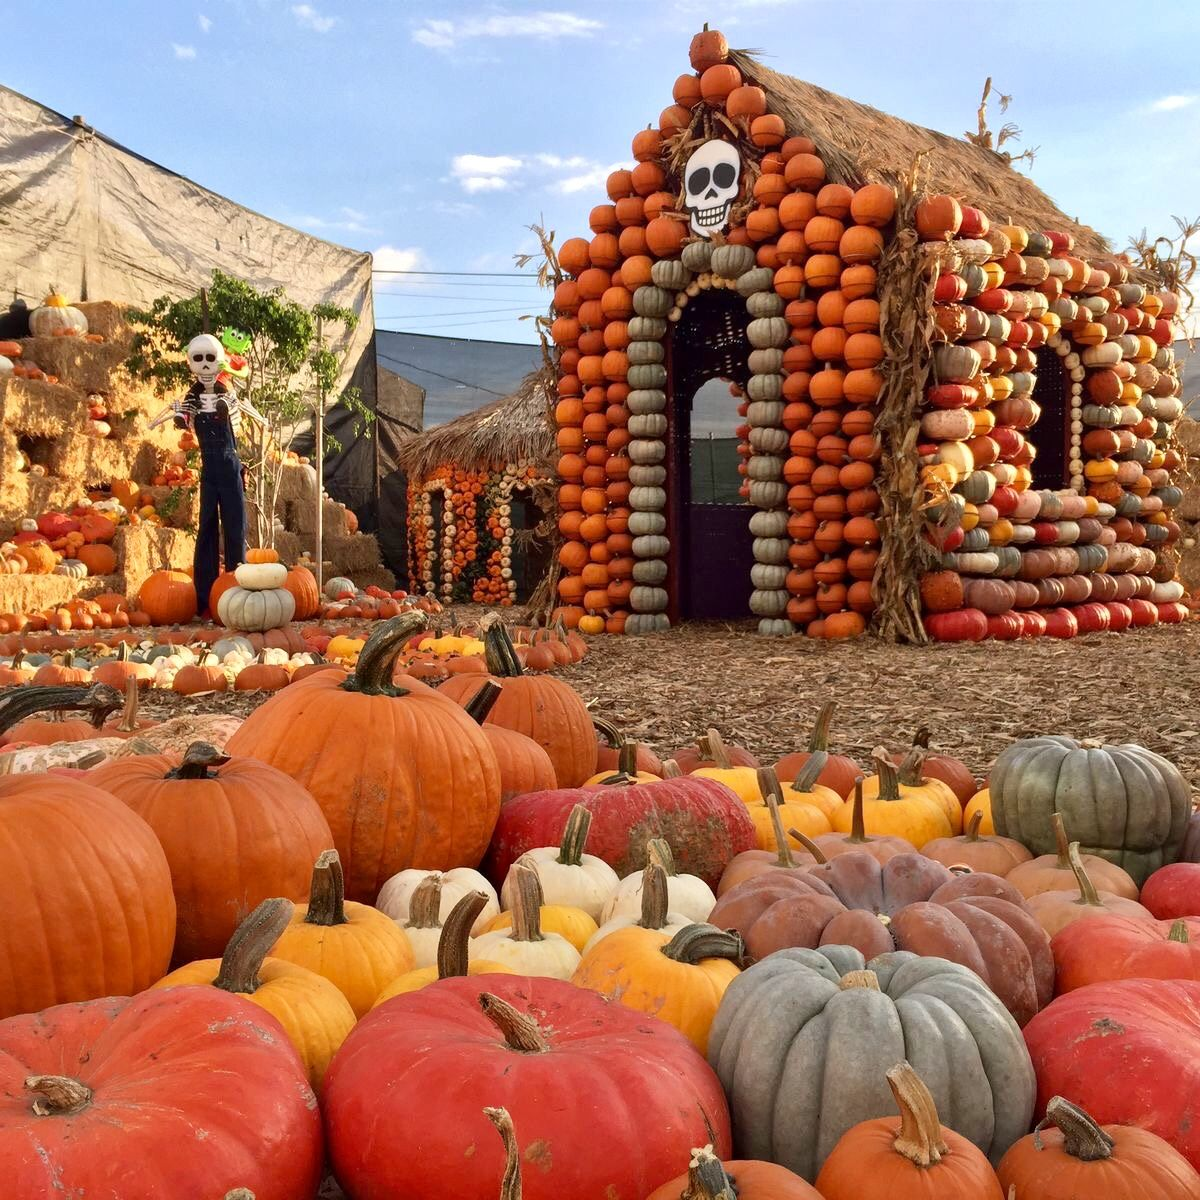 Pin by Lydiae on OCTOBER LOVIN' Best pumpkin patches